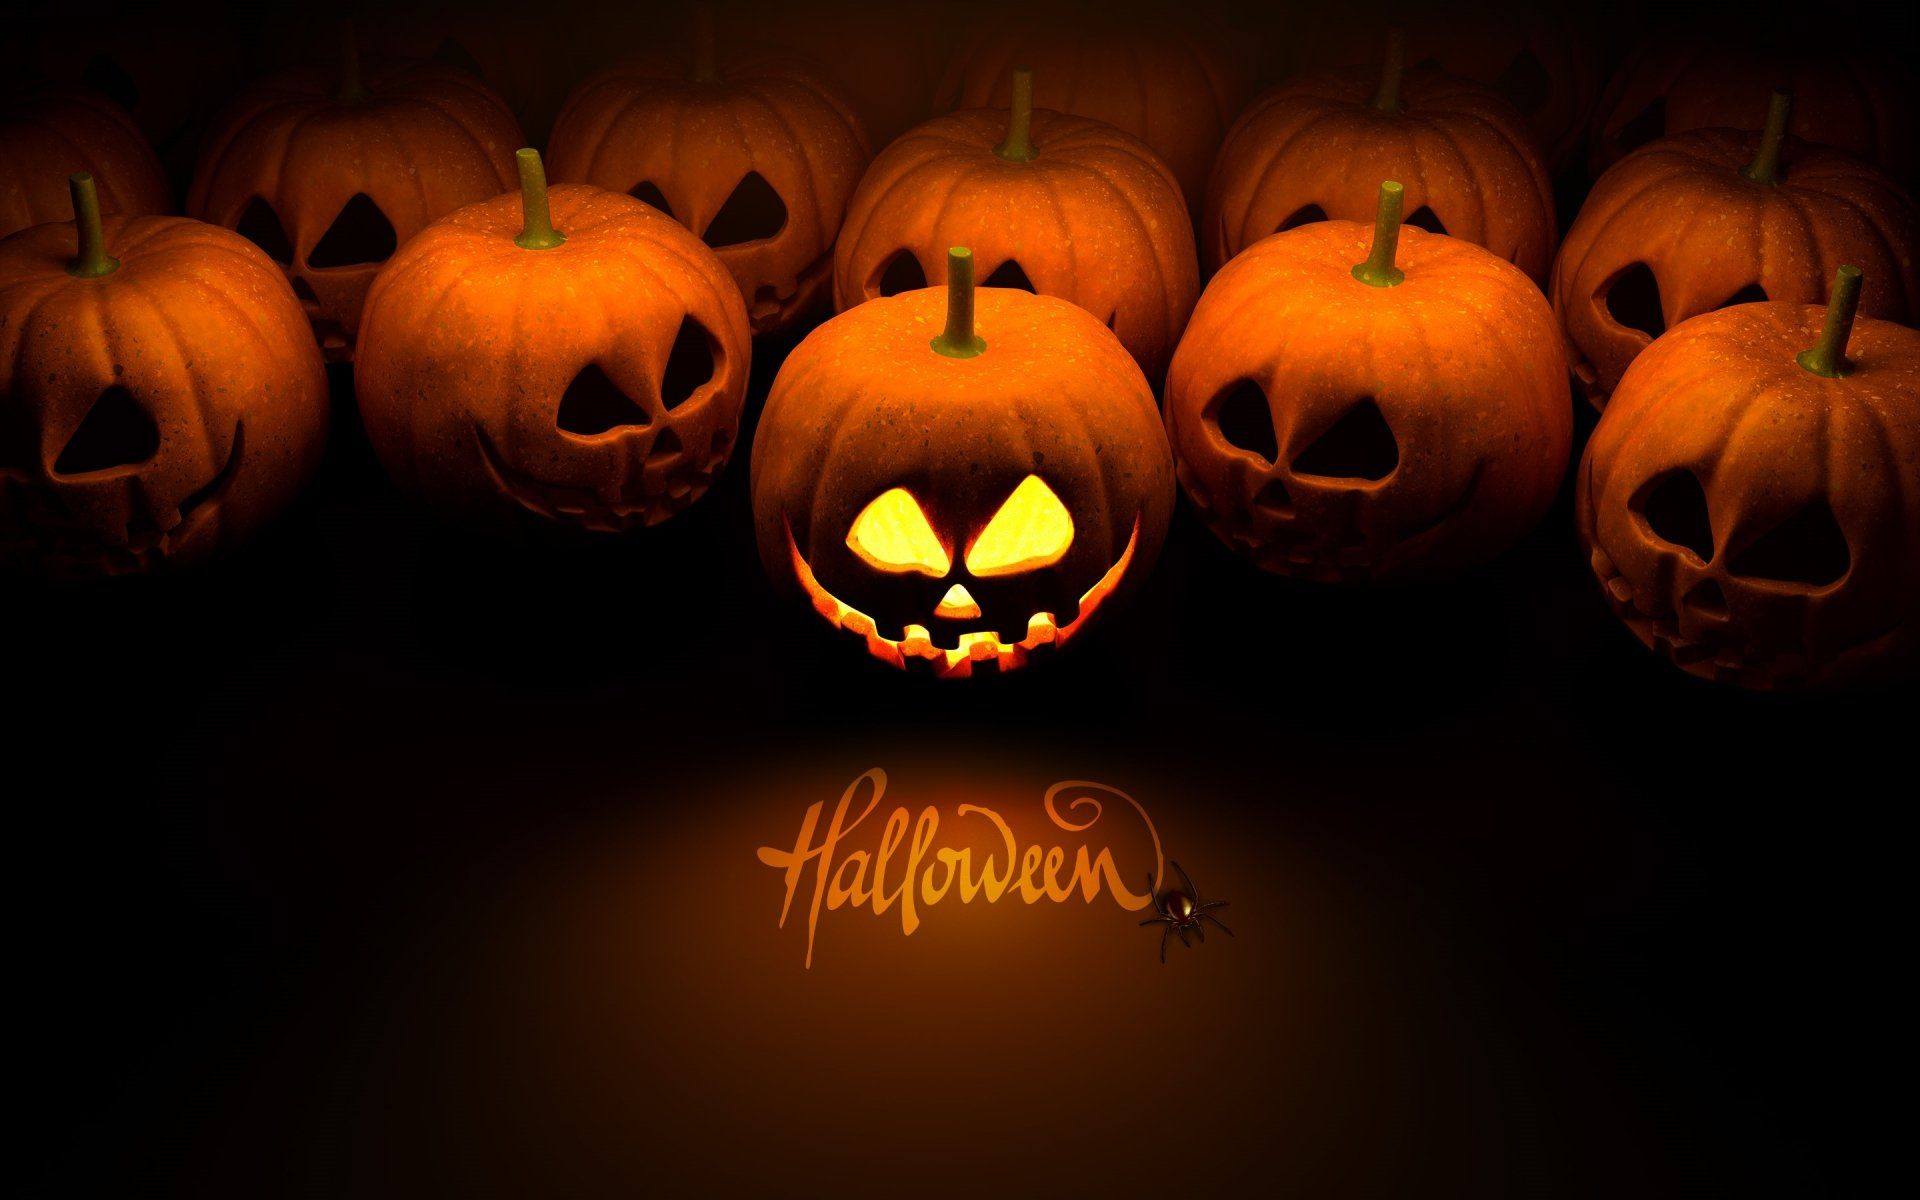 Holiday Halloween Holiday Jack O Lantern Wallpaper Halloween Wallpaper Backgrounds Halloween Wallpaper Cute Wallpapers For Computer